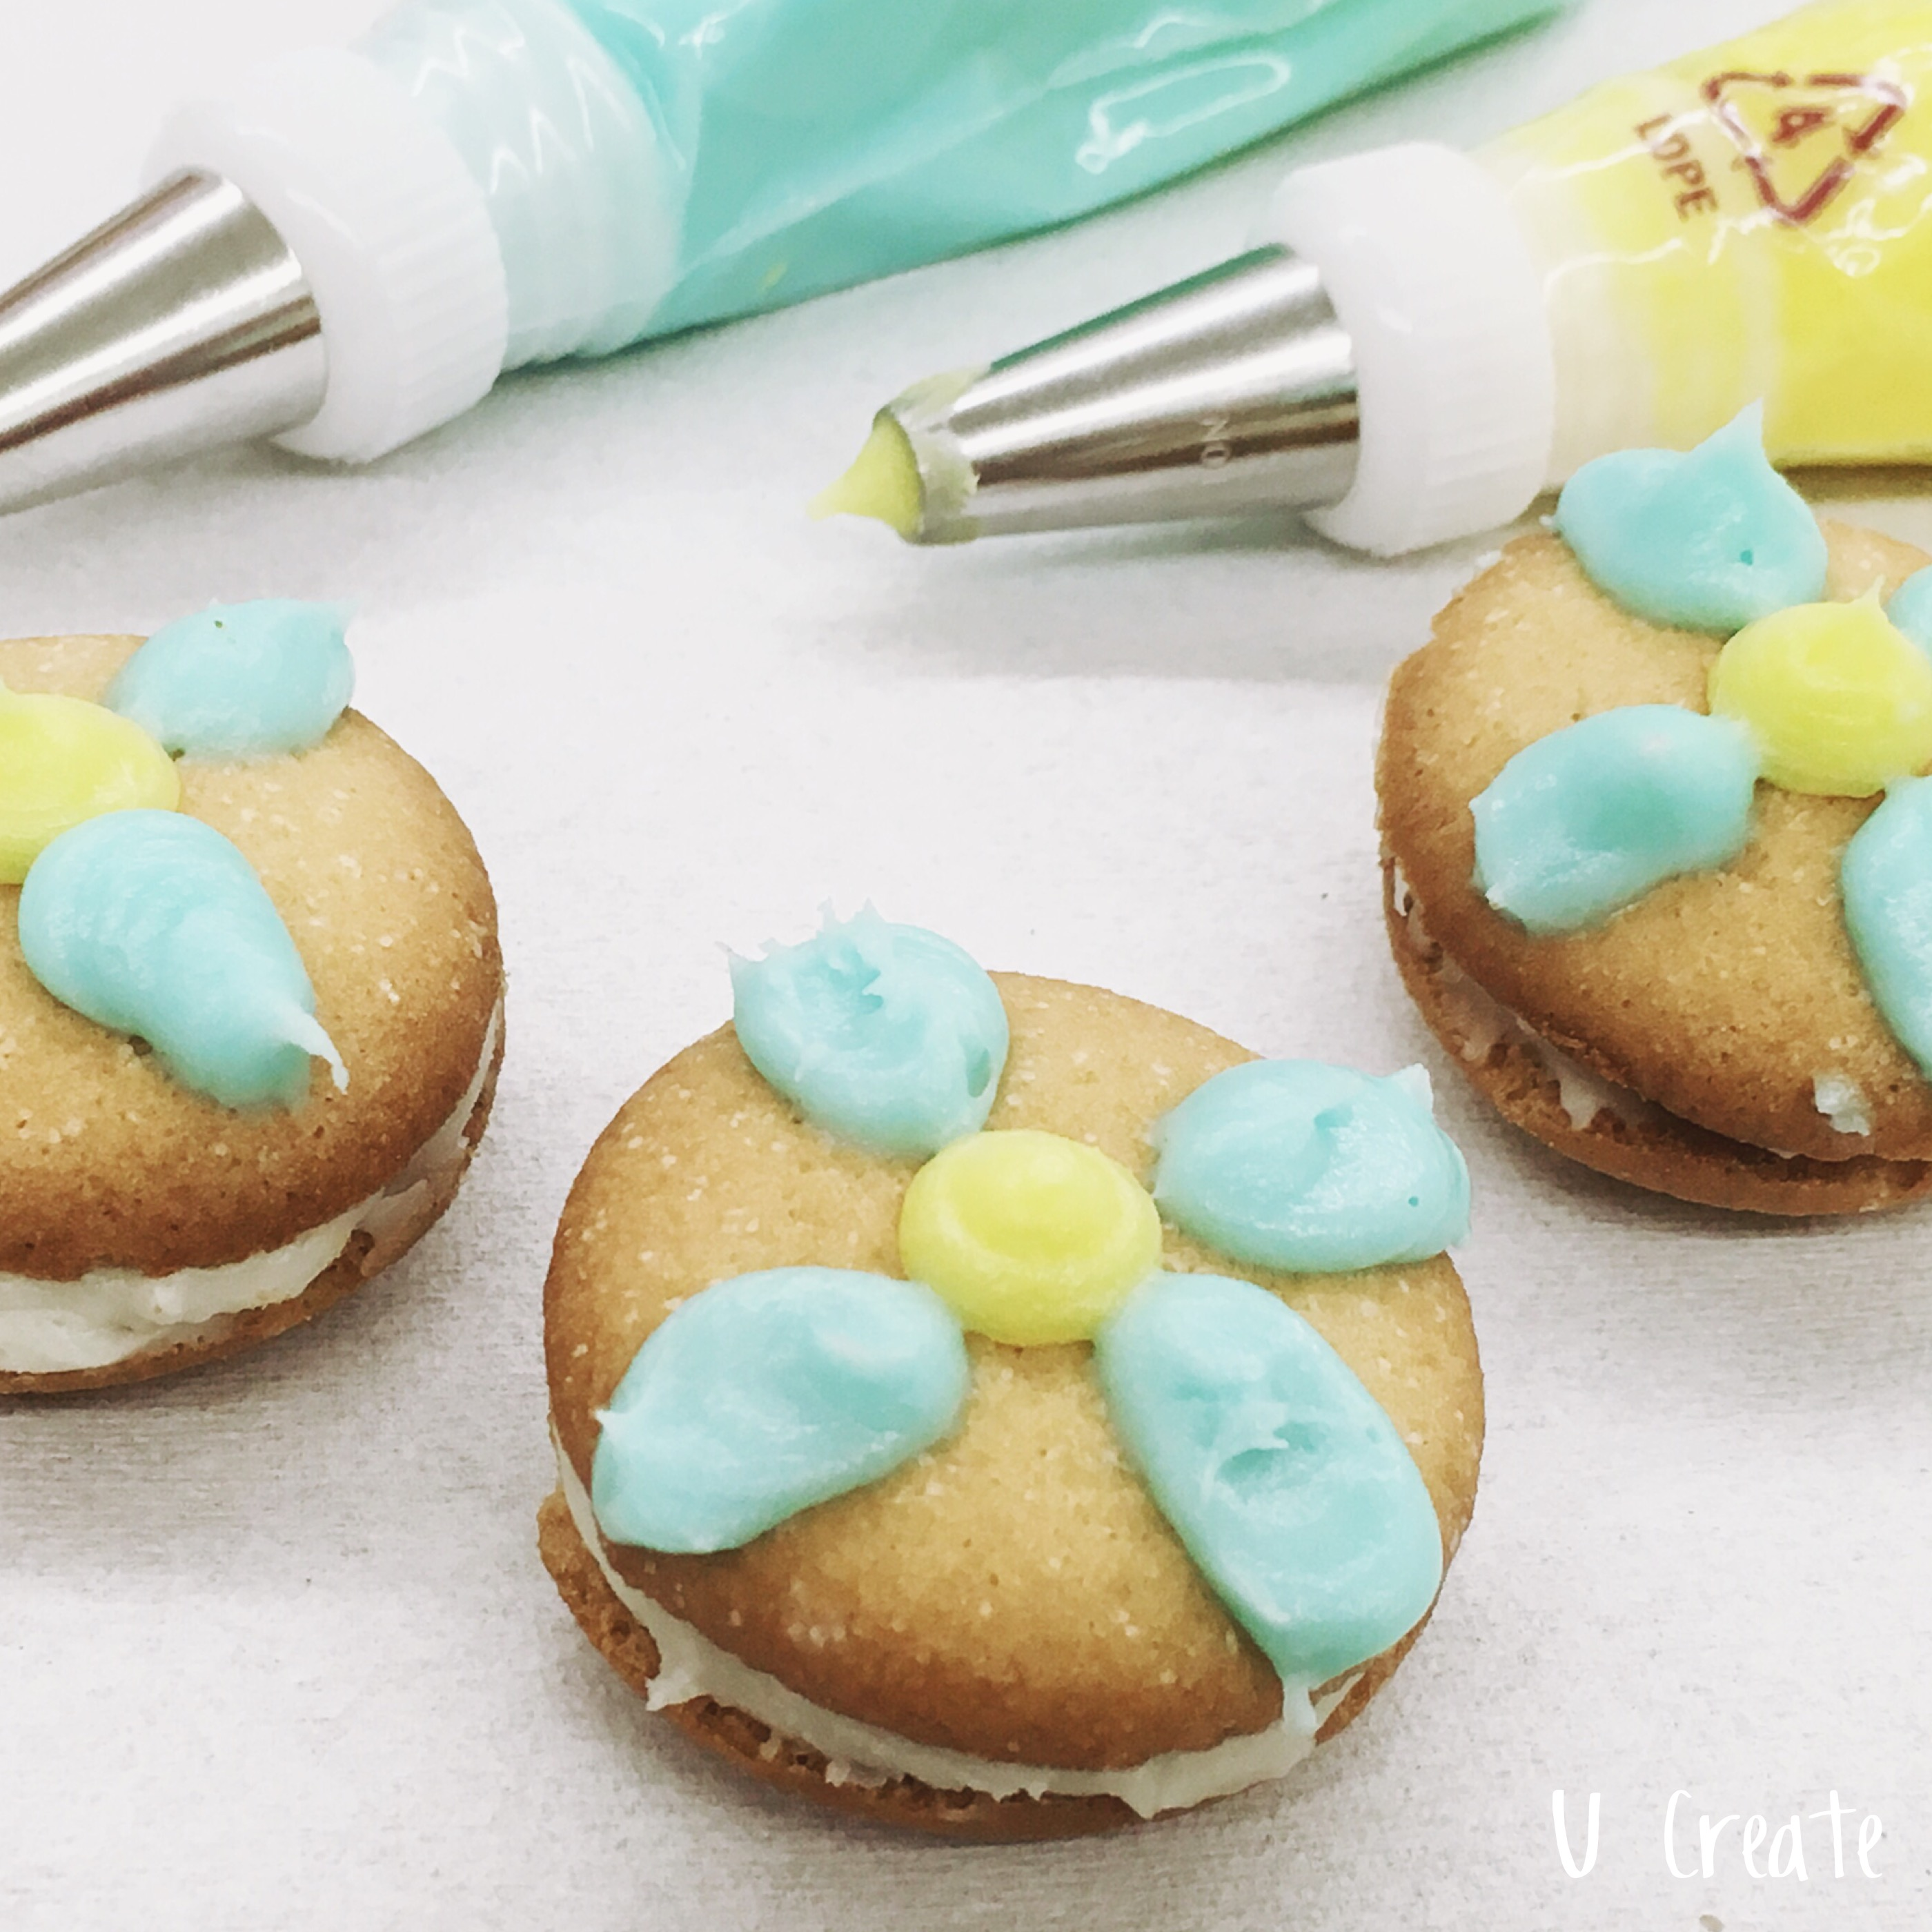 Learn something new - cookie decorating basics!